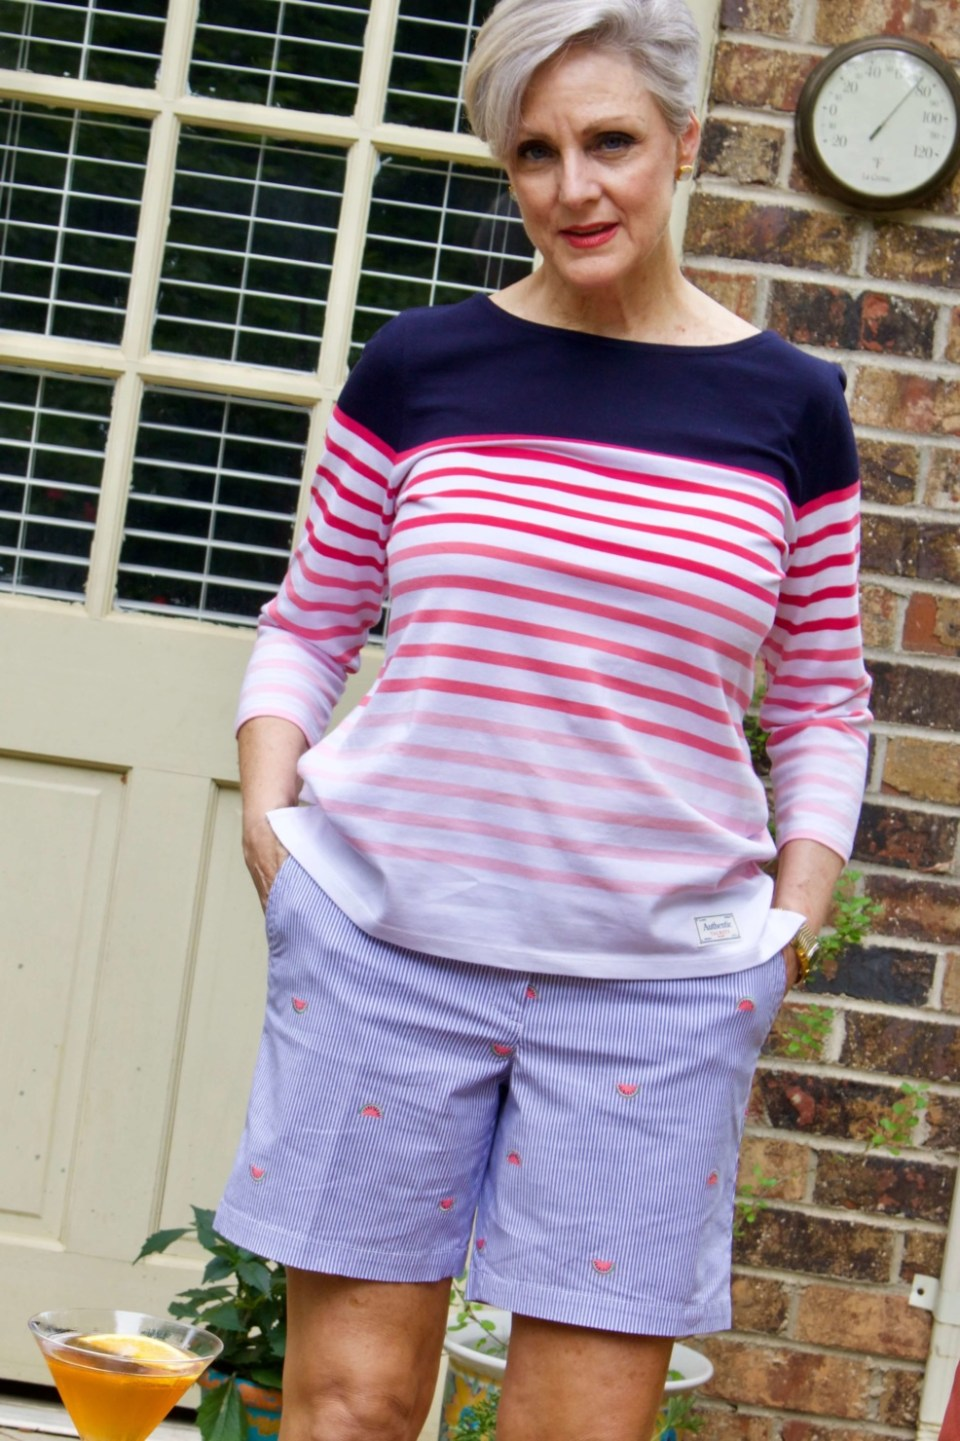 beth from Style at a Certain Age wears watermelon print shorts, striped tee, white jacket and jack rodgers sandals